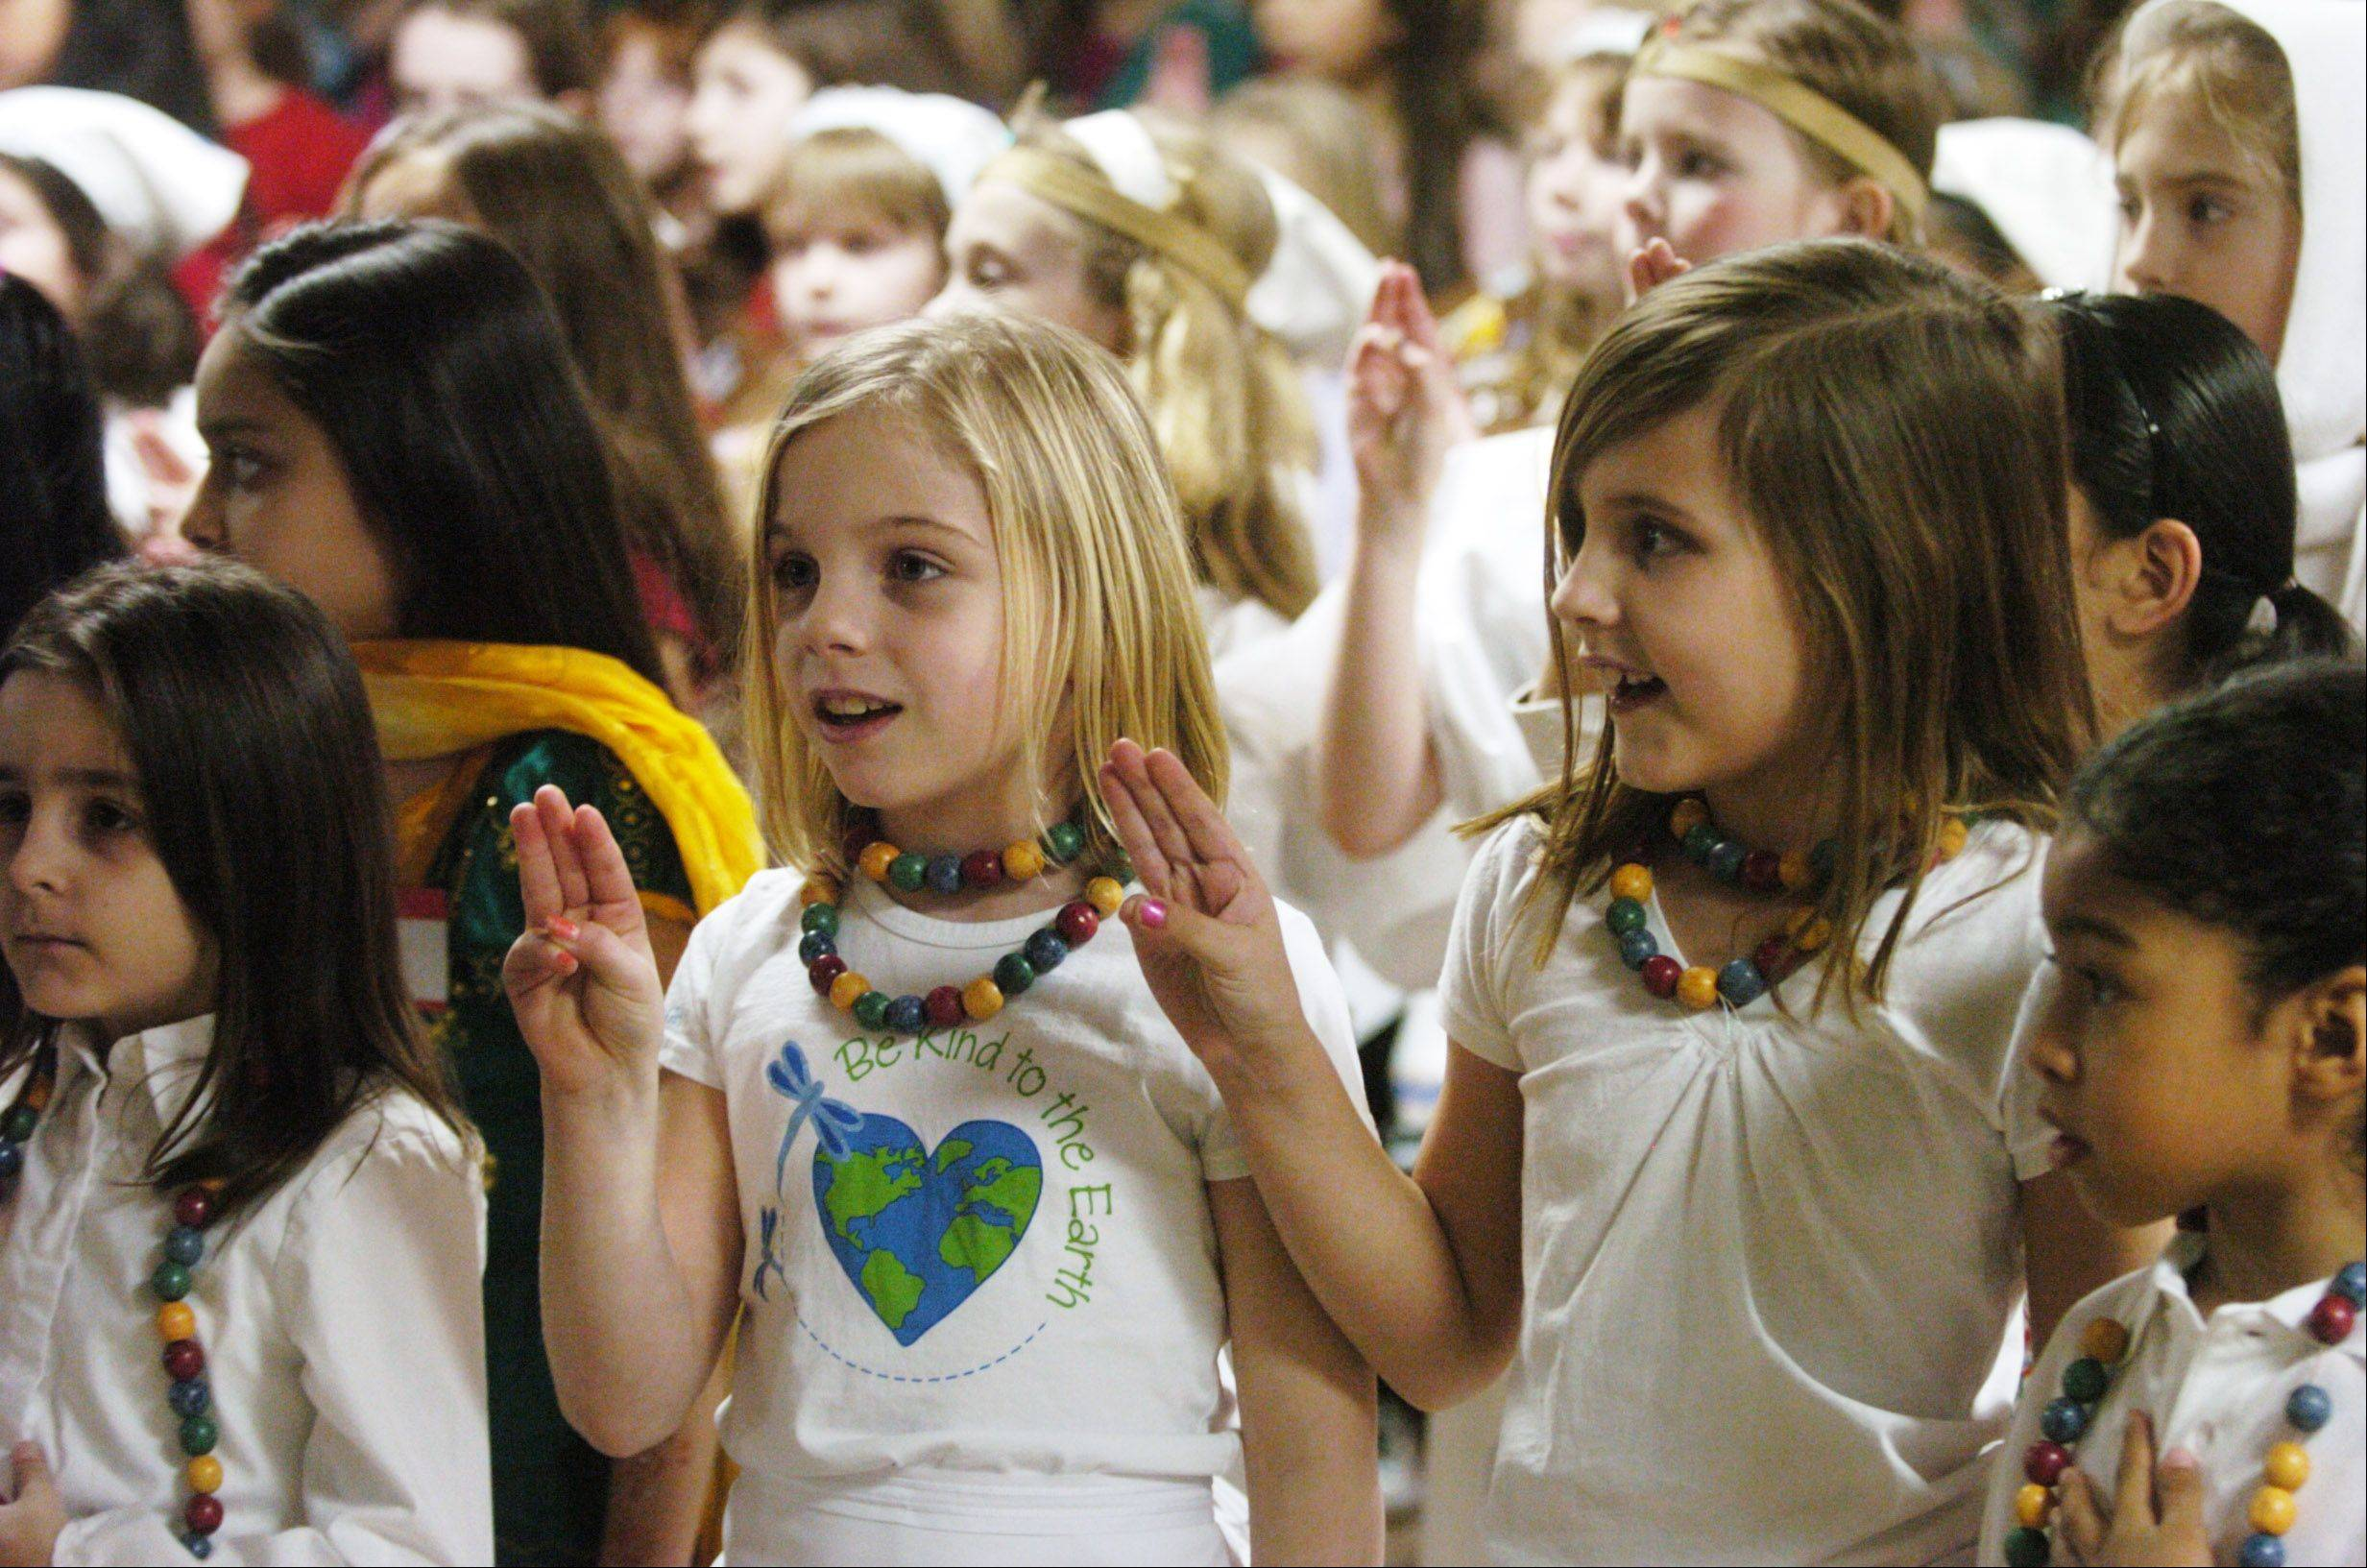 Gabriela Zabiegaj, 7, and Bailey Constock, 7, both of Mount Prospect and Daisy Troop 41735, recite the Girl Scout Promise during Girl Scouts World Thinking Day held earlier this month at the Society of the Danube Swabians in Des Plaines. The Girl Scouts mark their 100th anniversary today.